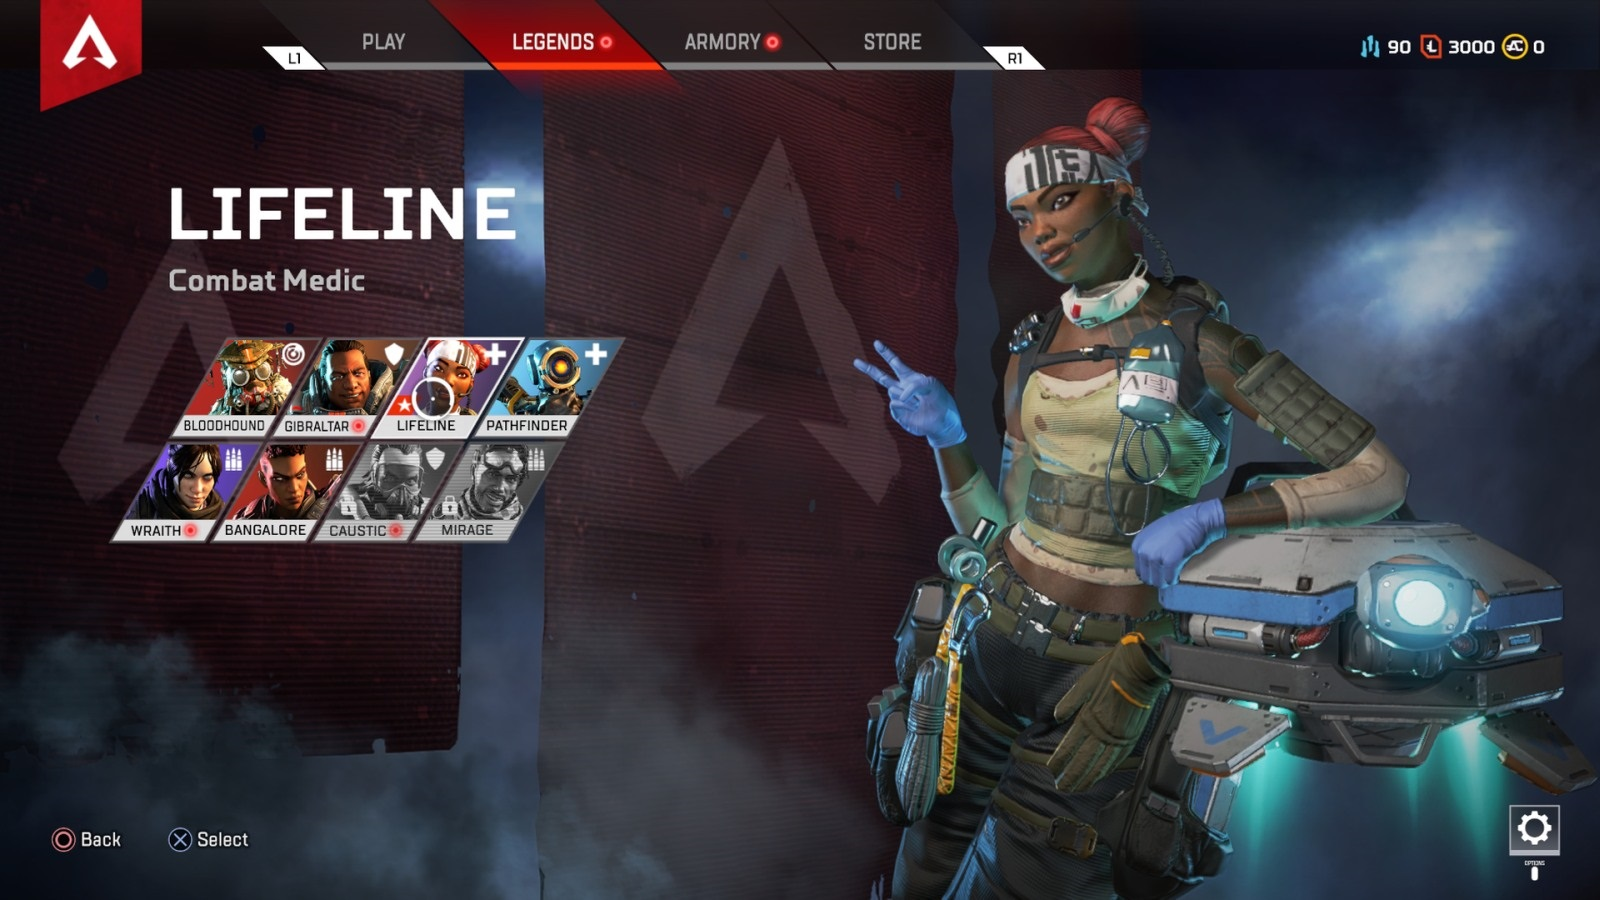 Apex Legends; gameplay: Lifeline